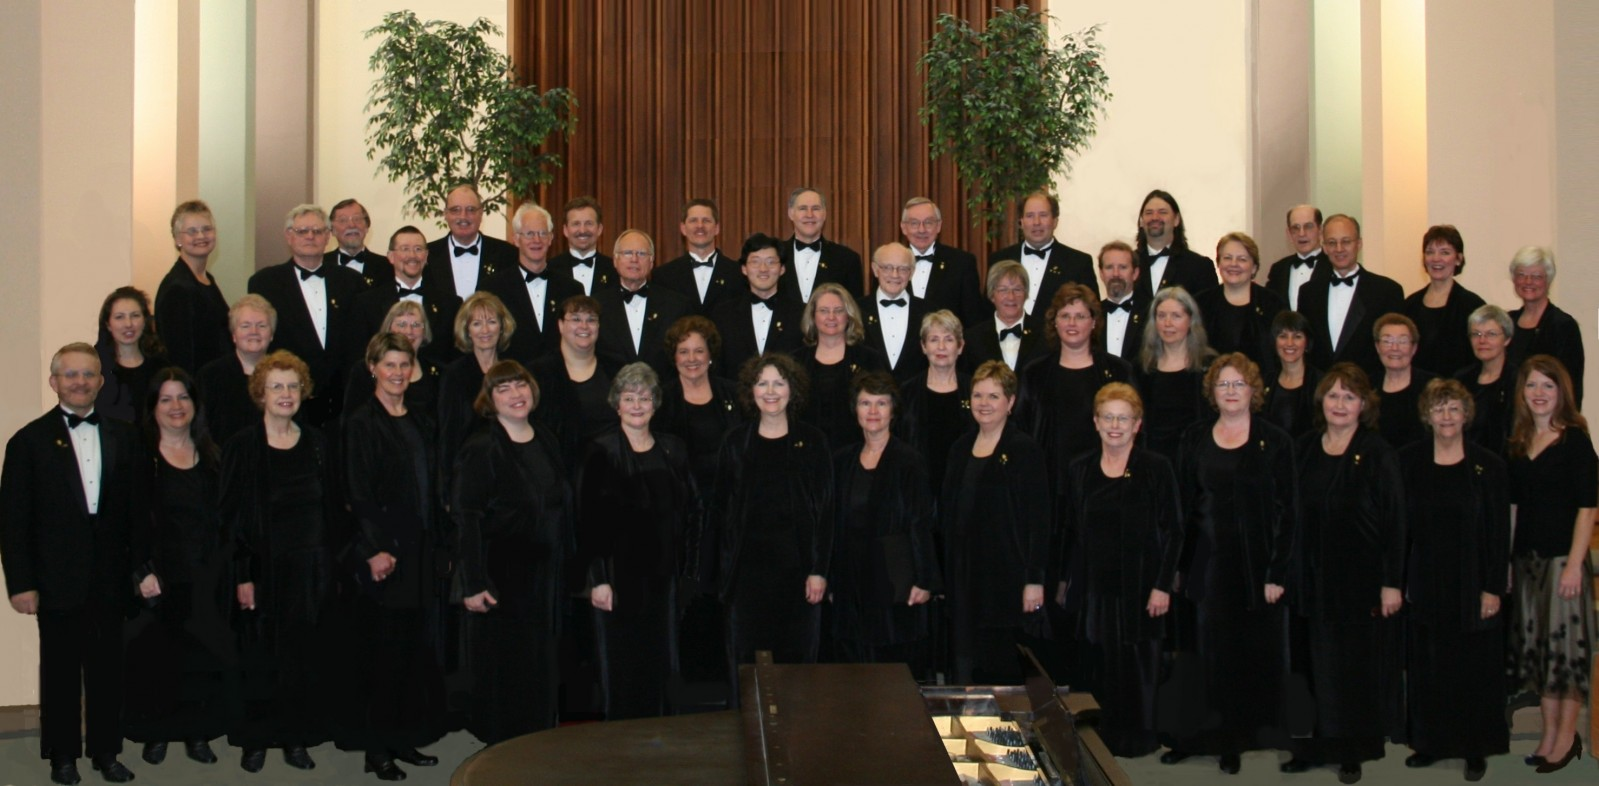 South Sound Classical Choir